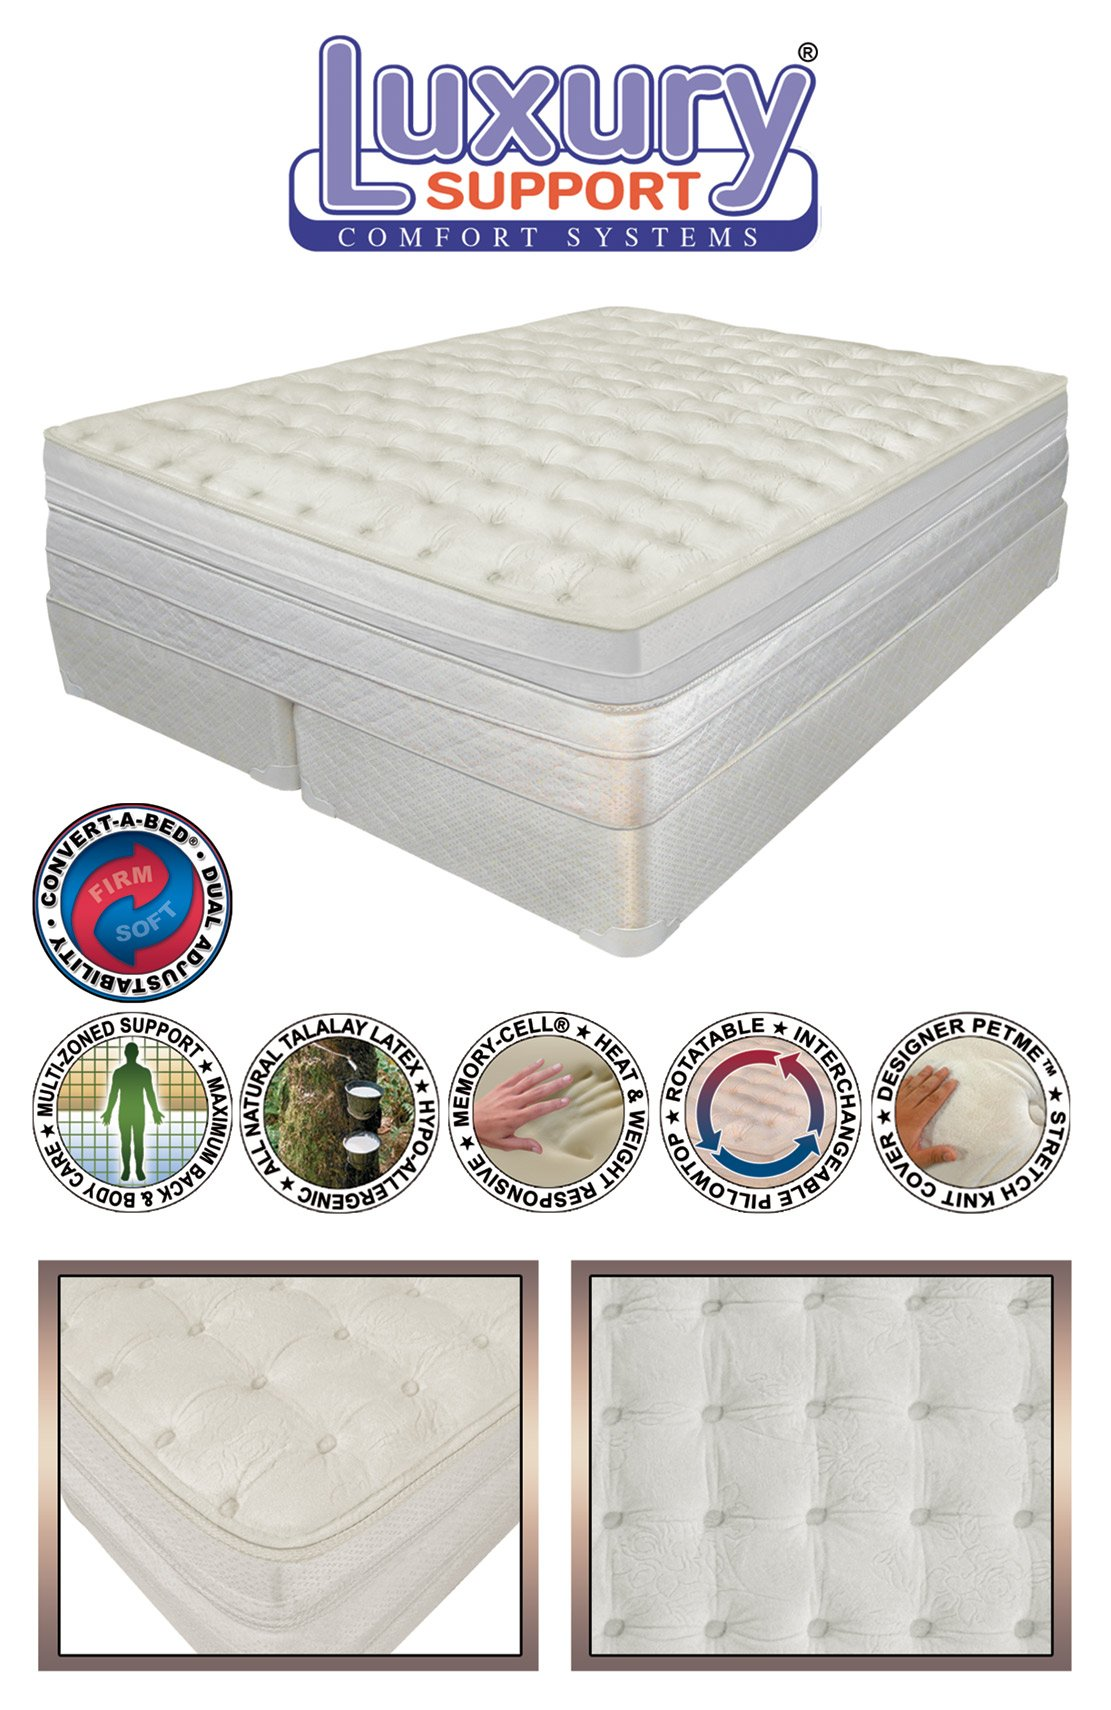 California King Size INNOMAX MEDALLION ADJUSTABLE SLEEP AIR BED MATTRESS. Includes Dual Remotes with 50 Number LED Display by INNOMAX